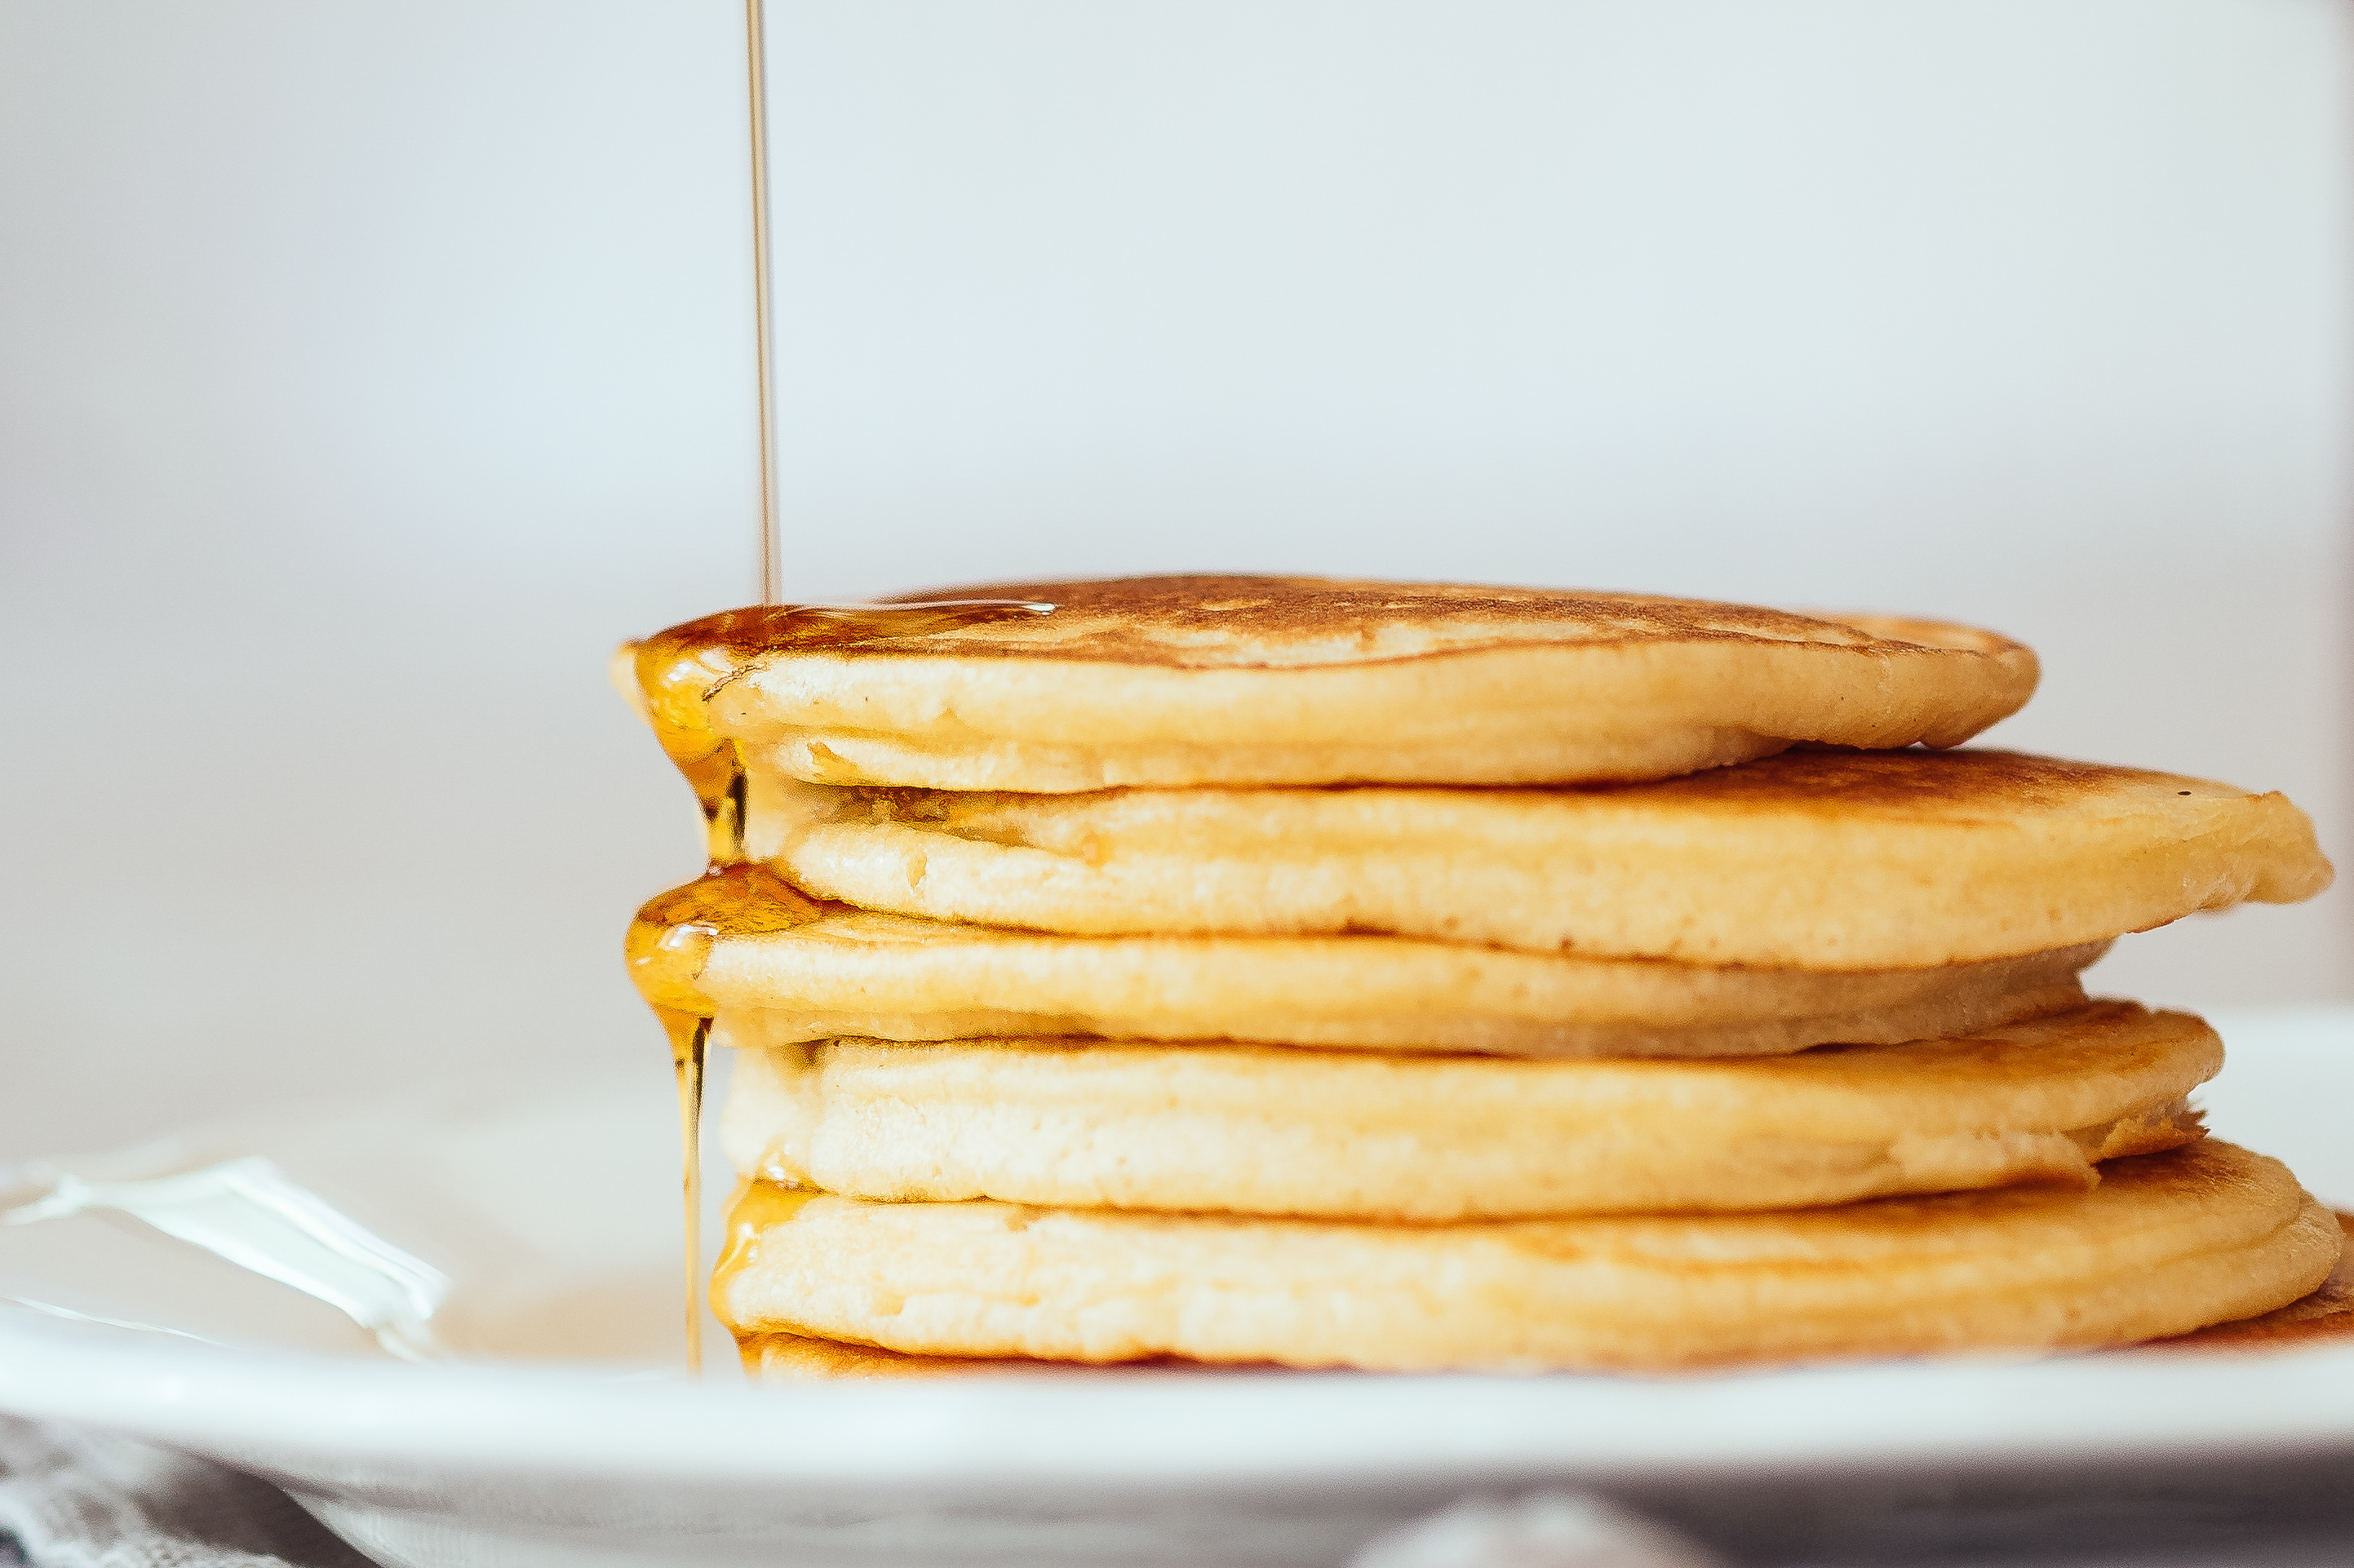 Maple Syrup Falling On Pancakes Served In Plate On Table